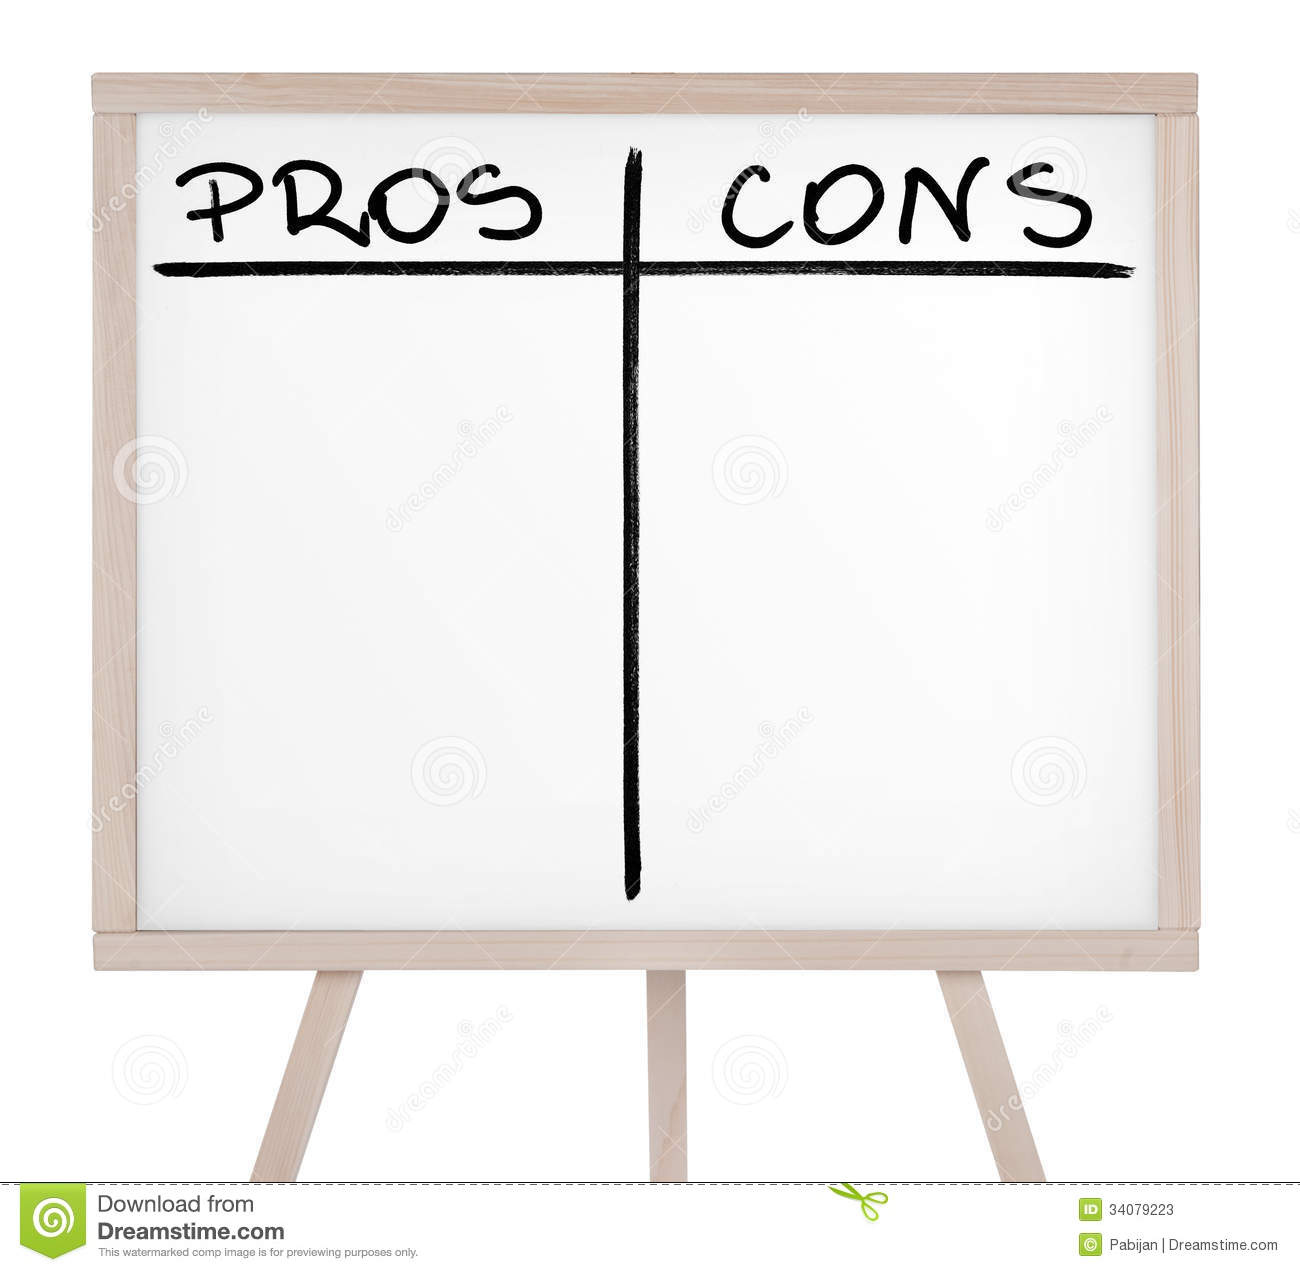 pros and cons on whiteboard stock photos image  presentation board empty pros and cons table stock photos